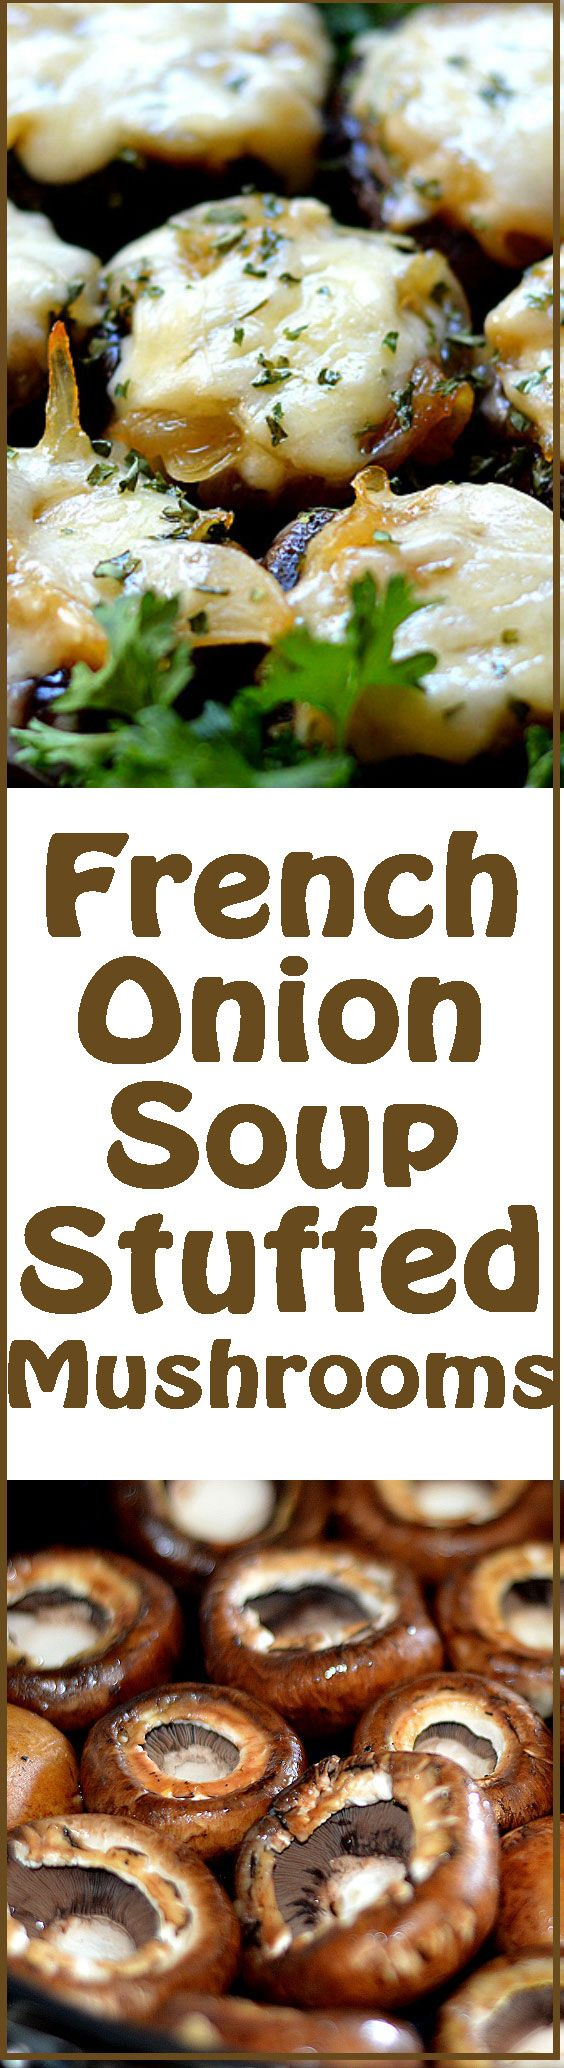 Stuffed mushrooms, French onion soups and French onion on Pinterest